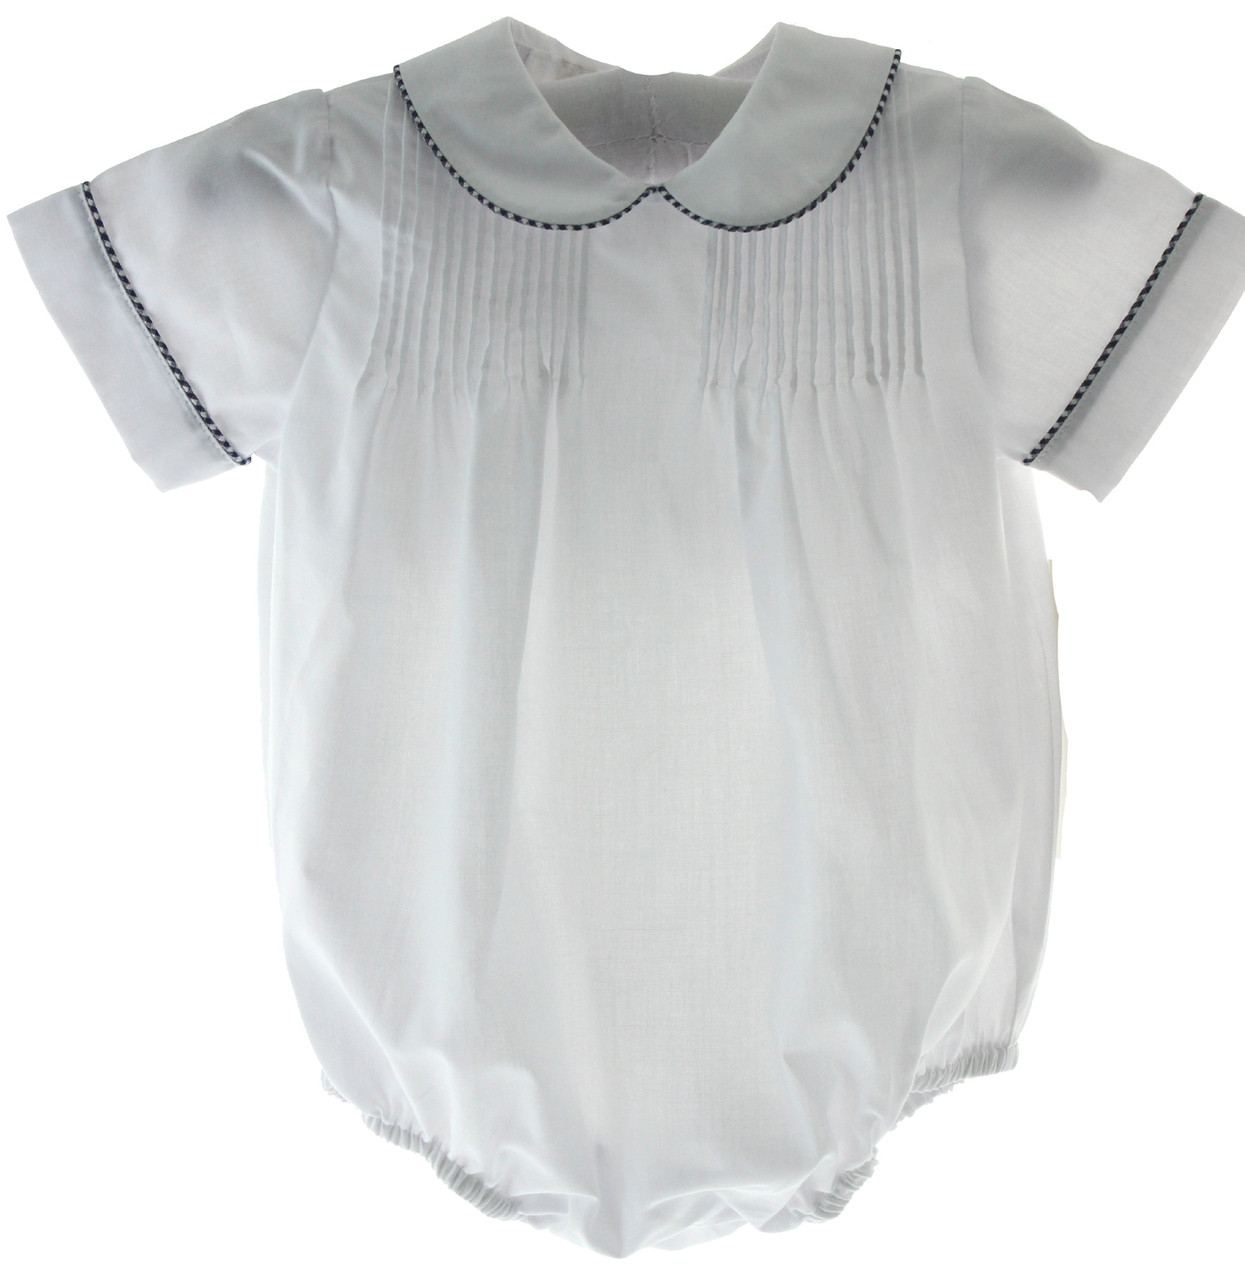 8fb9a54db ... Sailor Outfits; Boys White Bubble Outfit Peter Pan Collar Navy Blue  Trim | Rosalina. Loading zoom